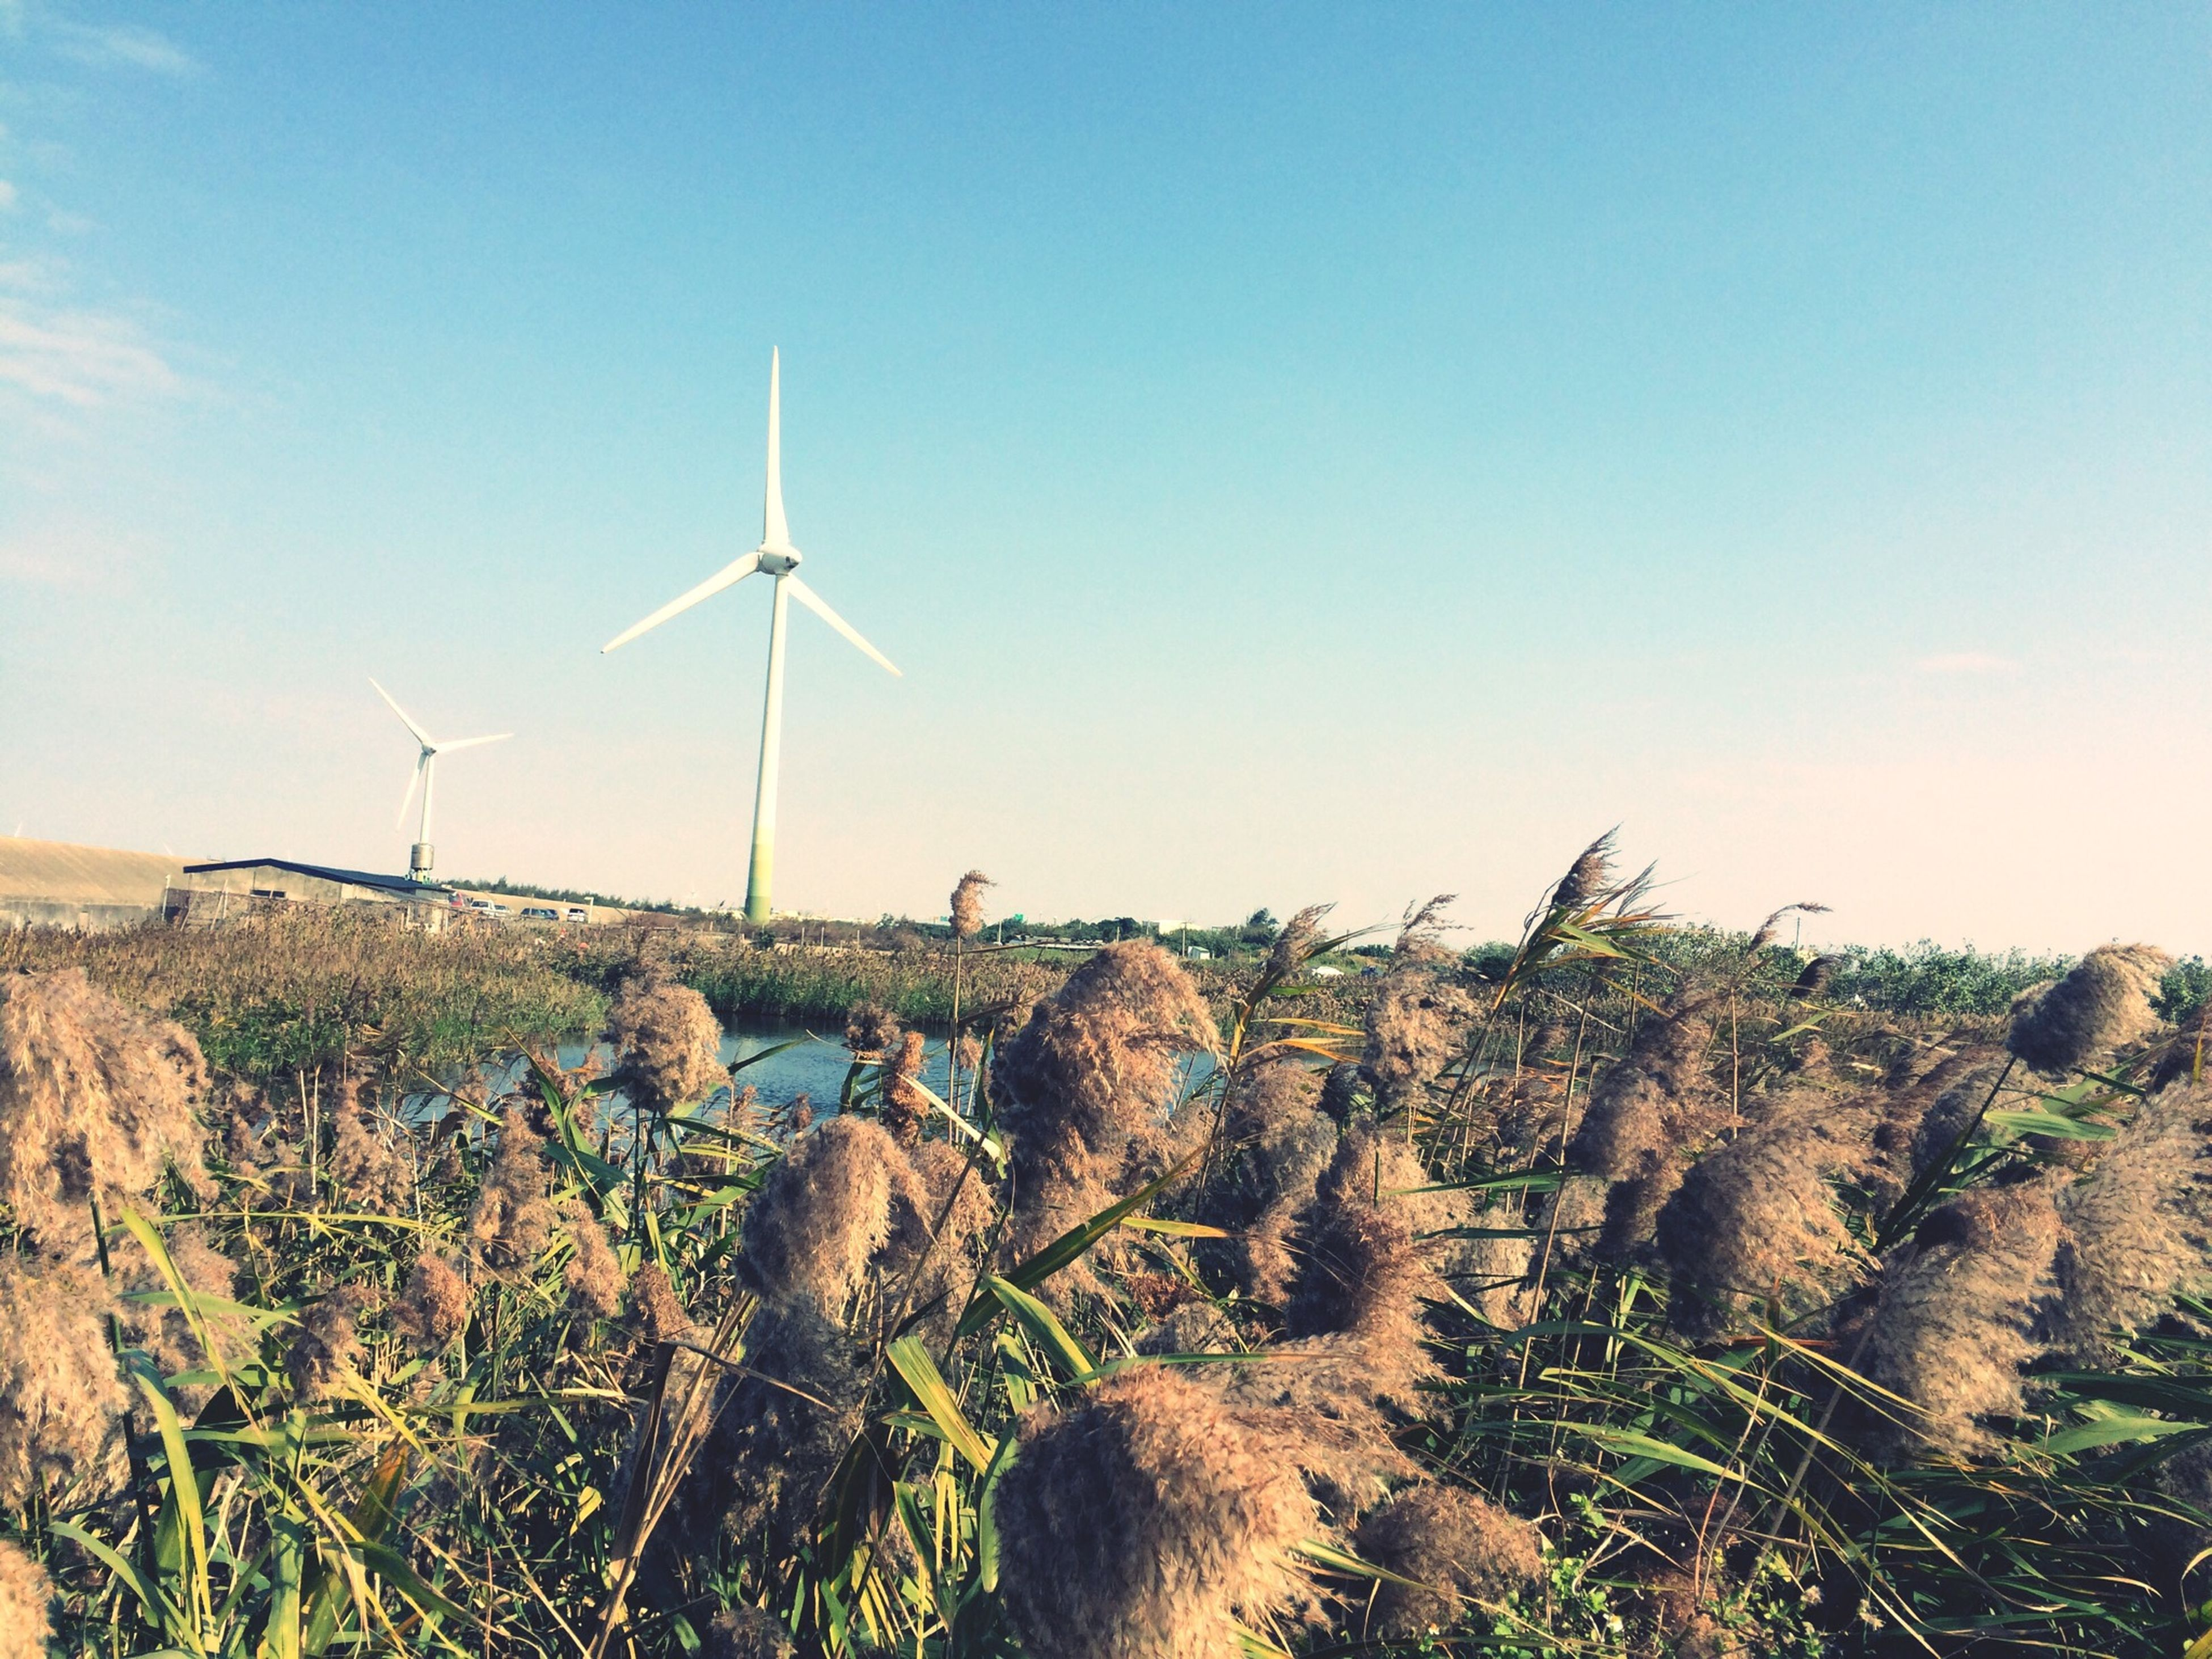 wind power, wind turbine, windmill, alternative energy, environmental conservation, landscape, renewable energy, fuel and power generation, field, rural scene, clear sky, tranquil scene, tranquility, traditional windmill, copy space, nature, horizon over land, technology, grass, sky